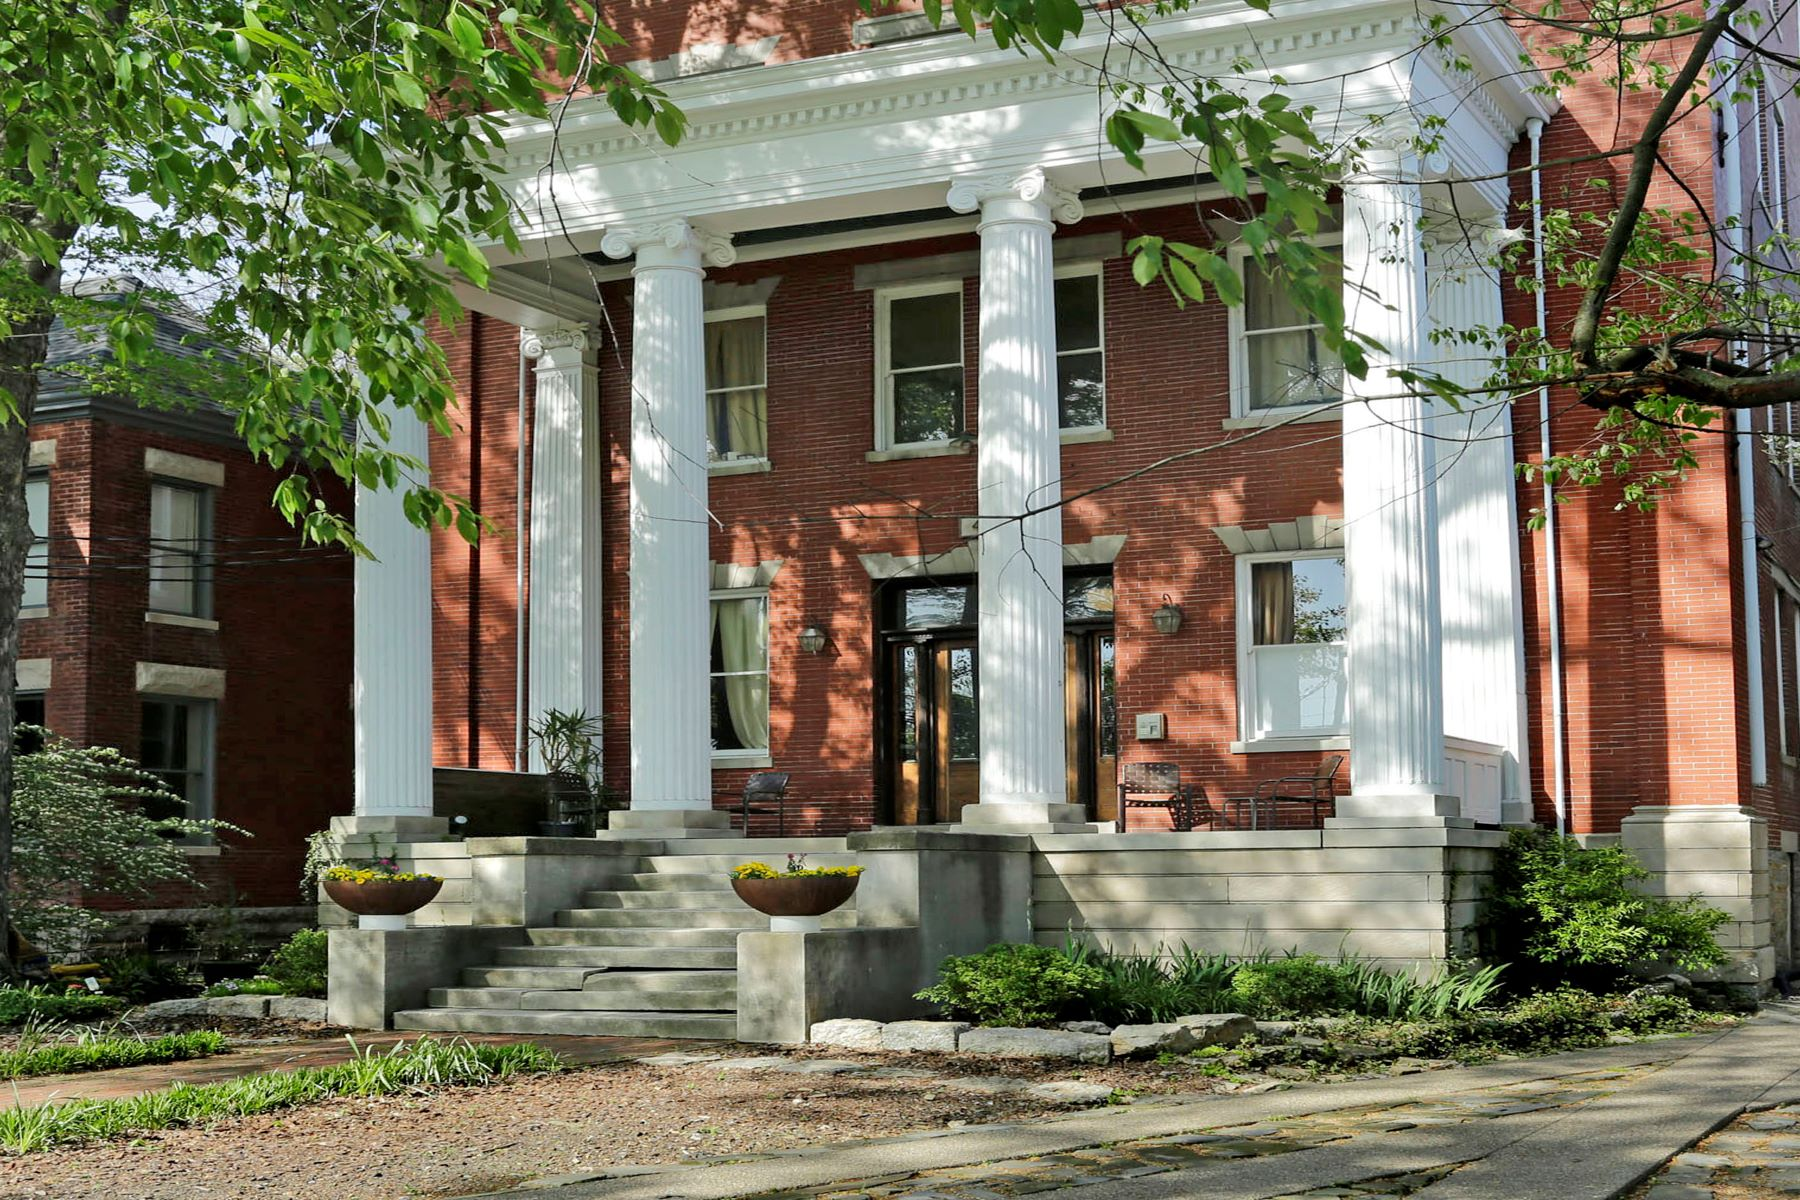 Condominium for Sale at 441 W. Second St #310 Lexington, Kentucky 40507 United States